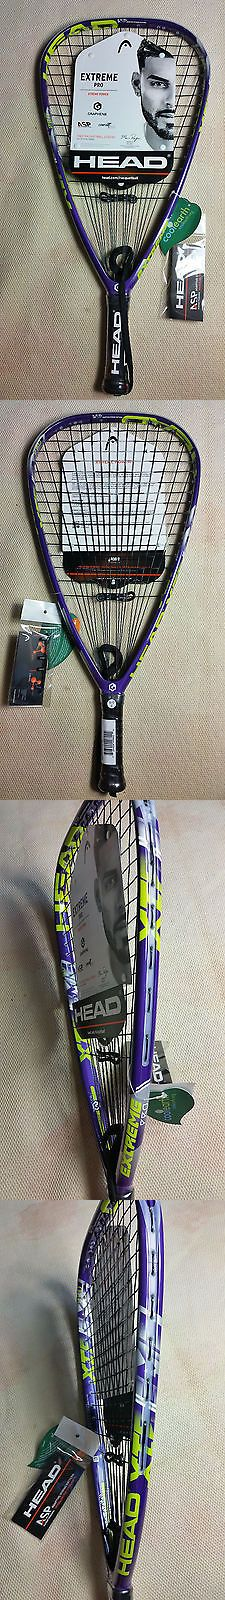 Racquetball 62168: New For 2017! Head Graphene Extreme Pro Racquetball Racquet. 3 5 8 Grip Warranty -> BUY IT NOW ONLY: $179 on eBay!